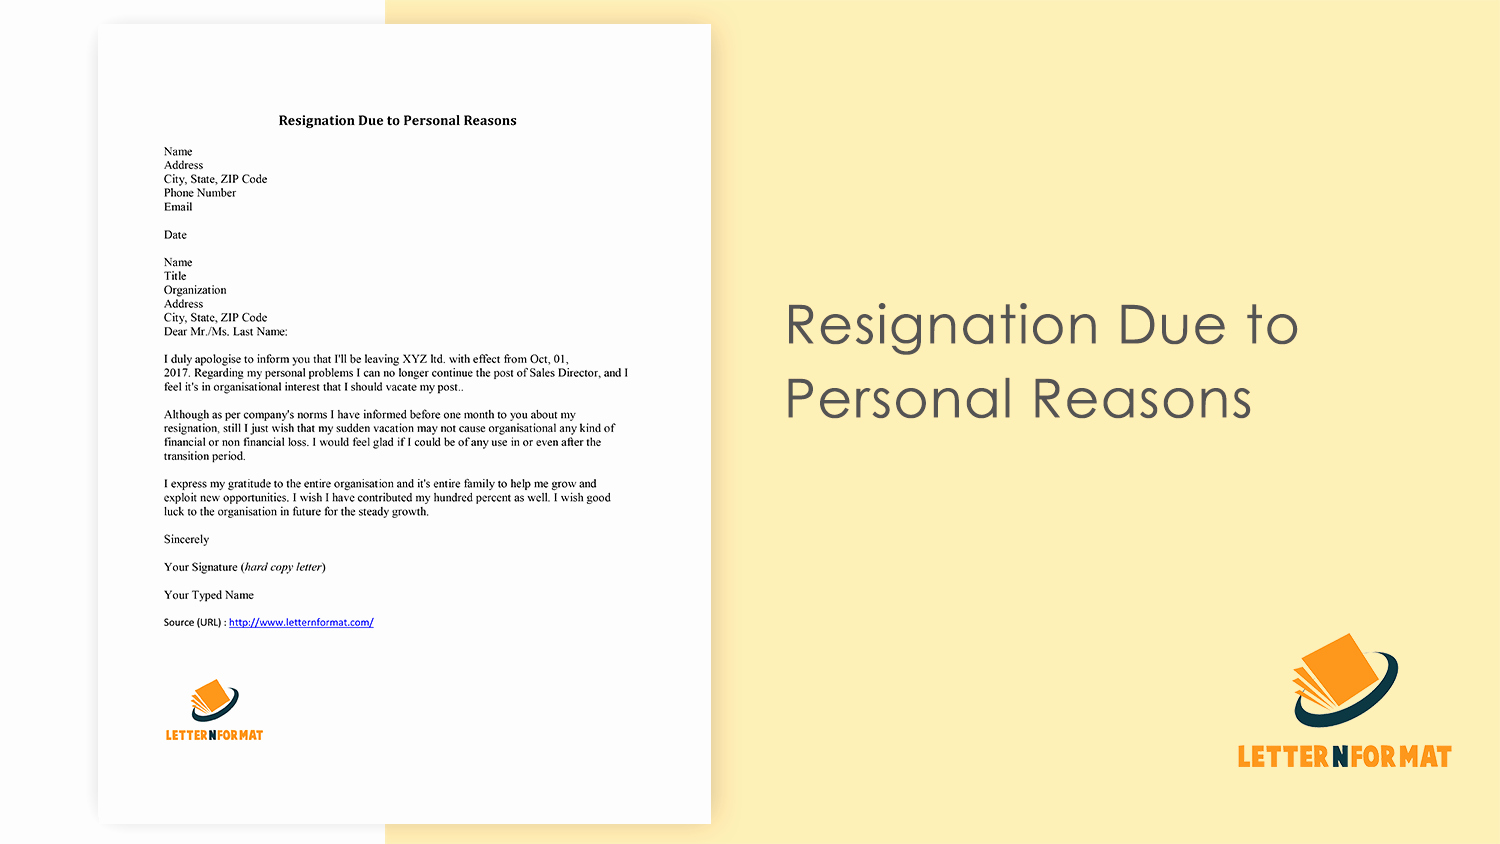 Resignation Letter Personal Reasons Elegant Resignation Letter format for Personal Reasons Download Pdf